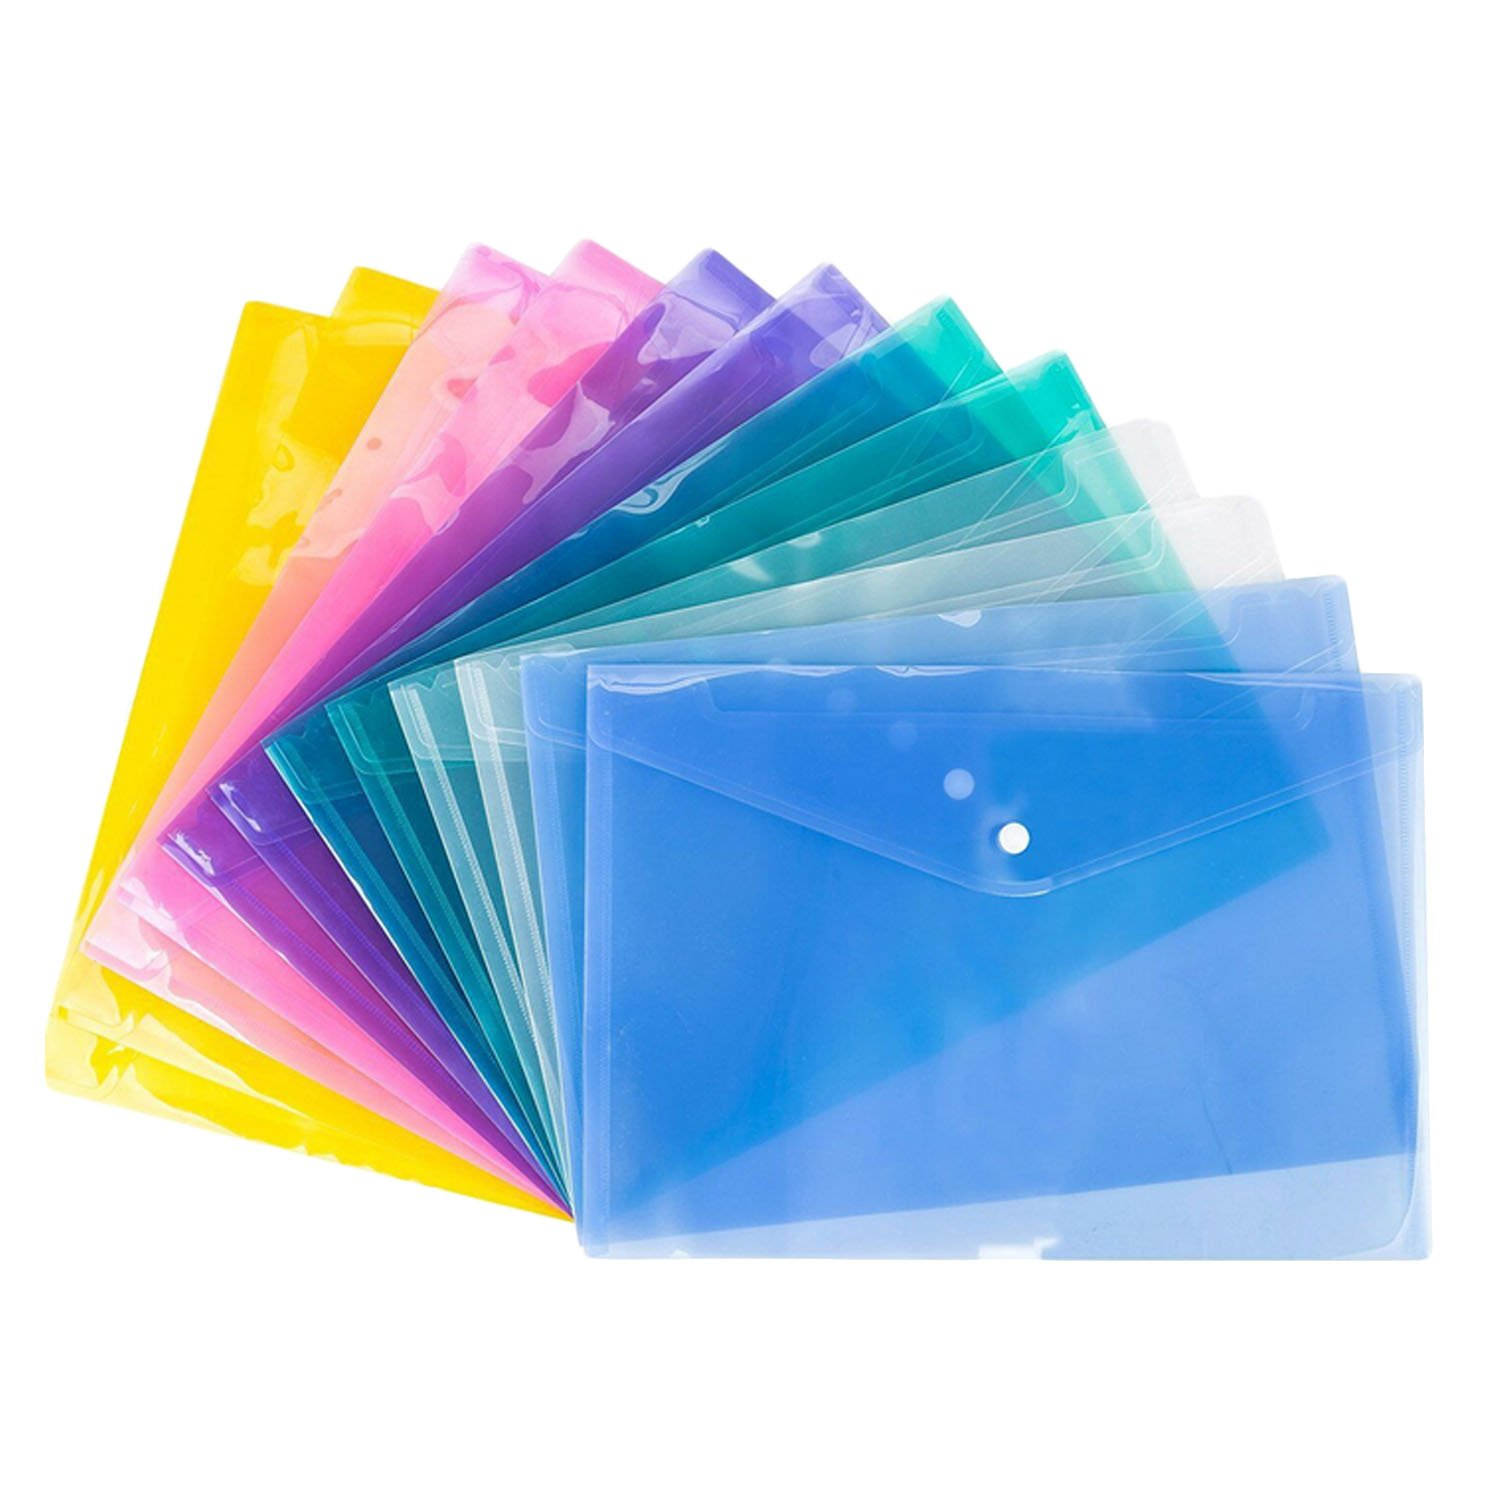 Gosear 12PCS A4 Size Assorted Colors Clear Document Paper File Folder with Button for Office Clerks School Students